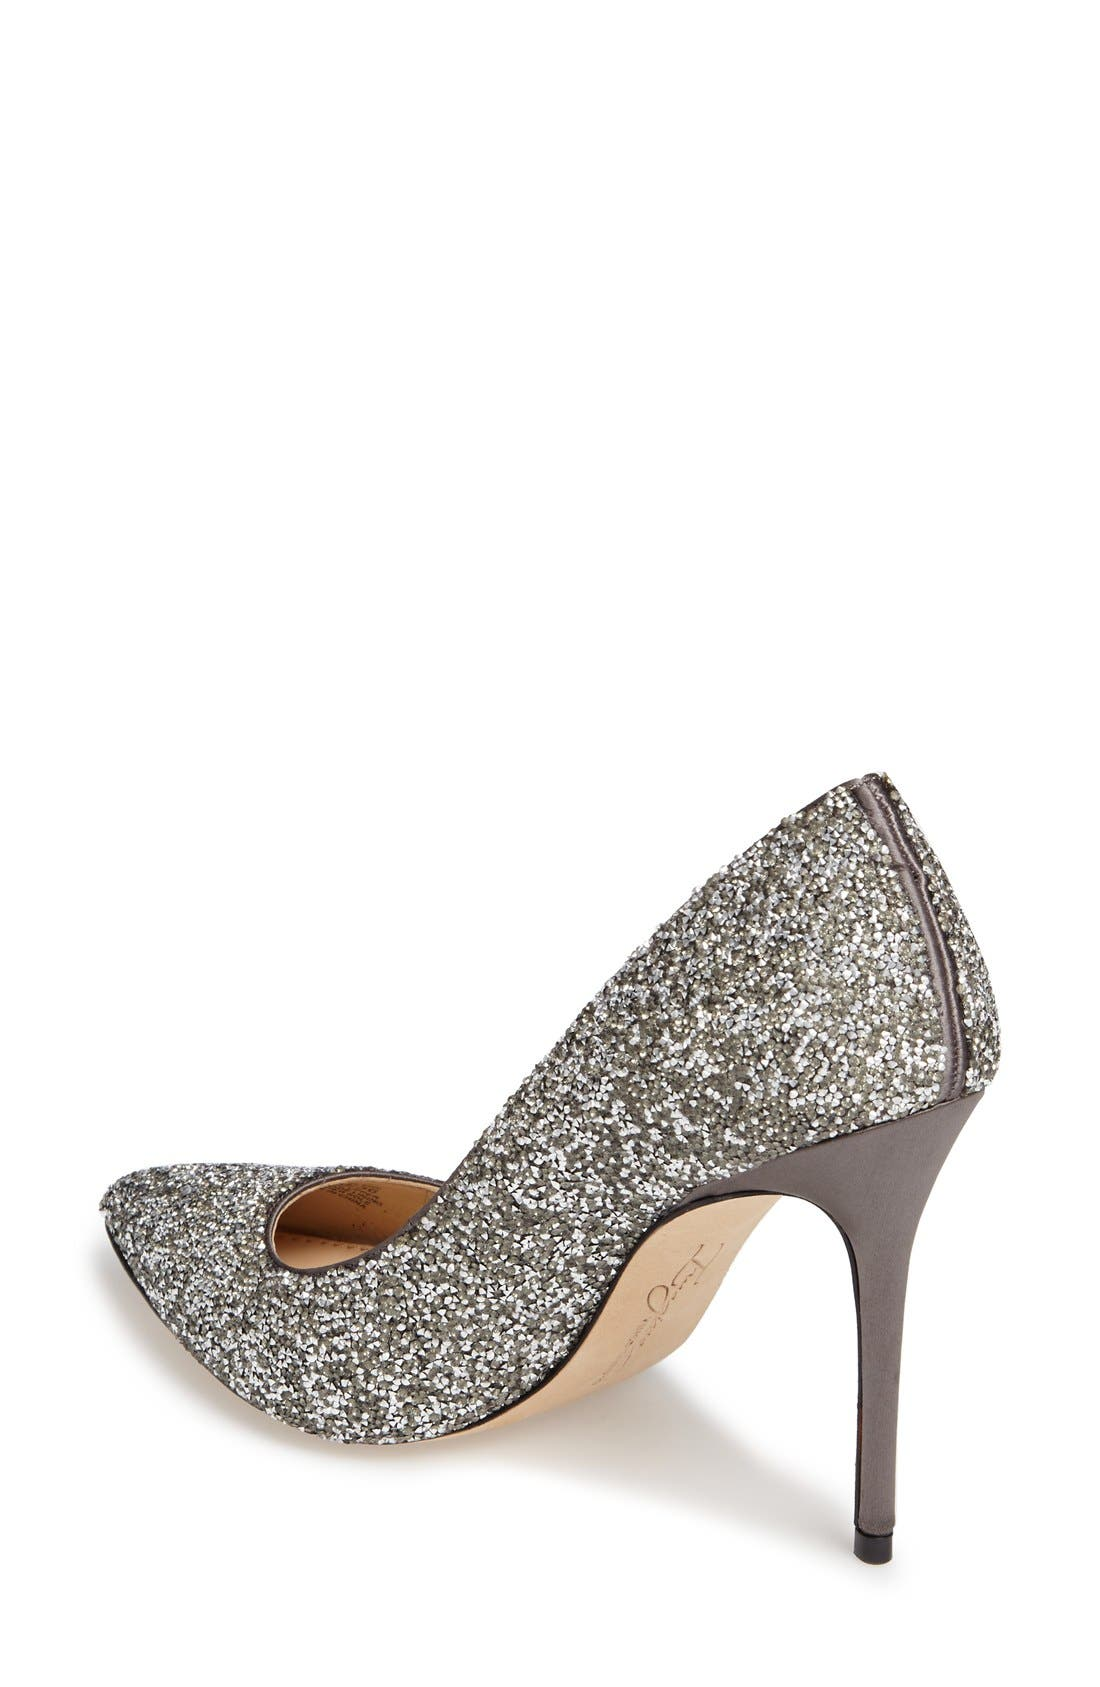 Alternate Image 2  - Imagine by Vince Camuto 'Olson' Crystal Embellished Pump (Women)